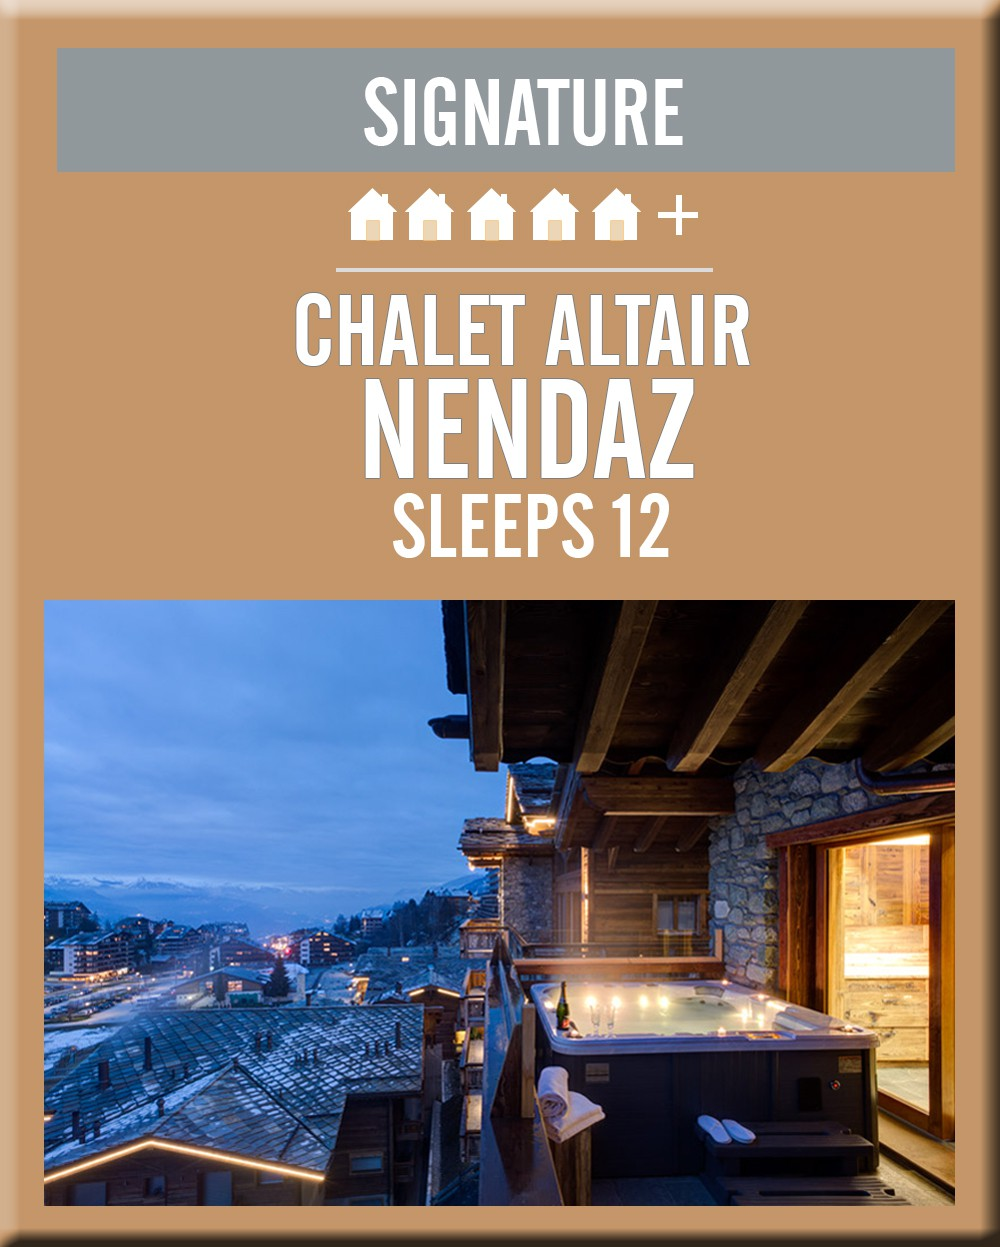 Switzerland chalet altair nendaz balcony jacuzzi night